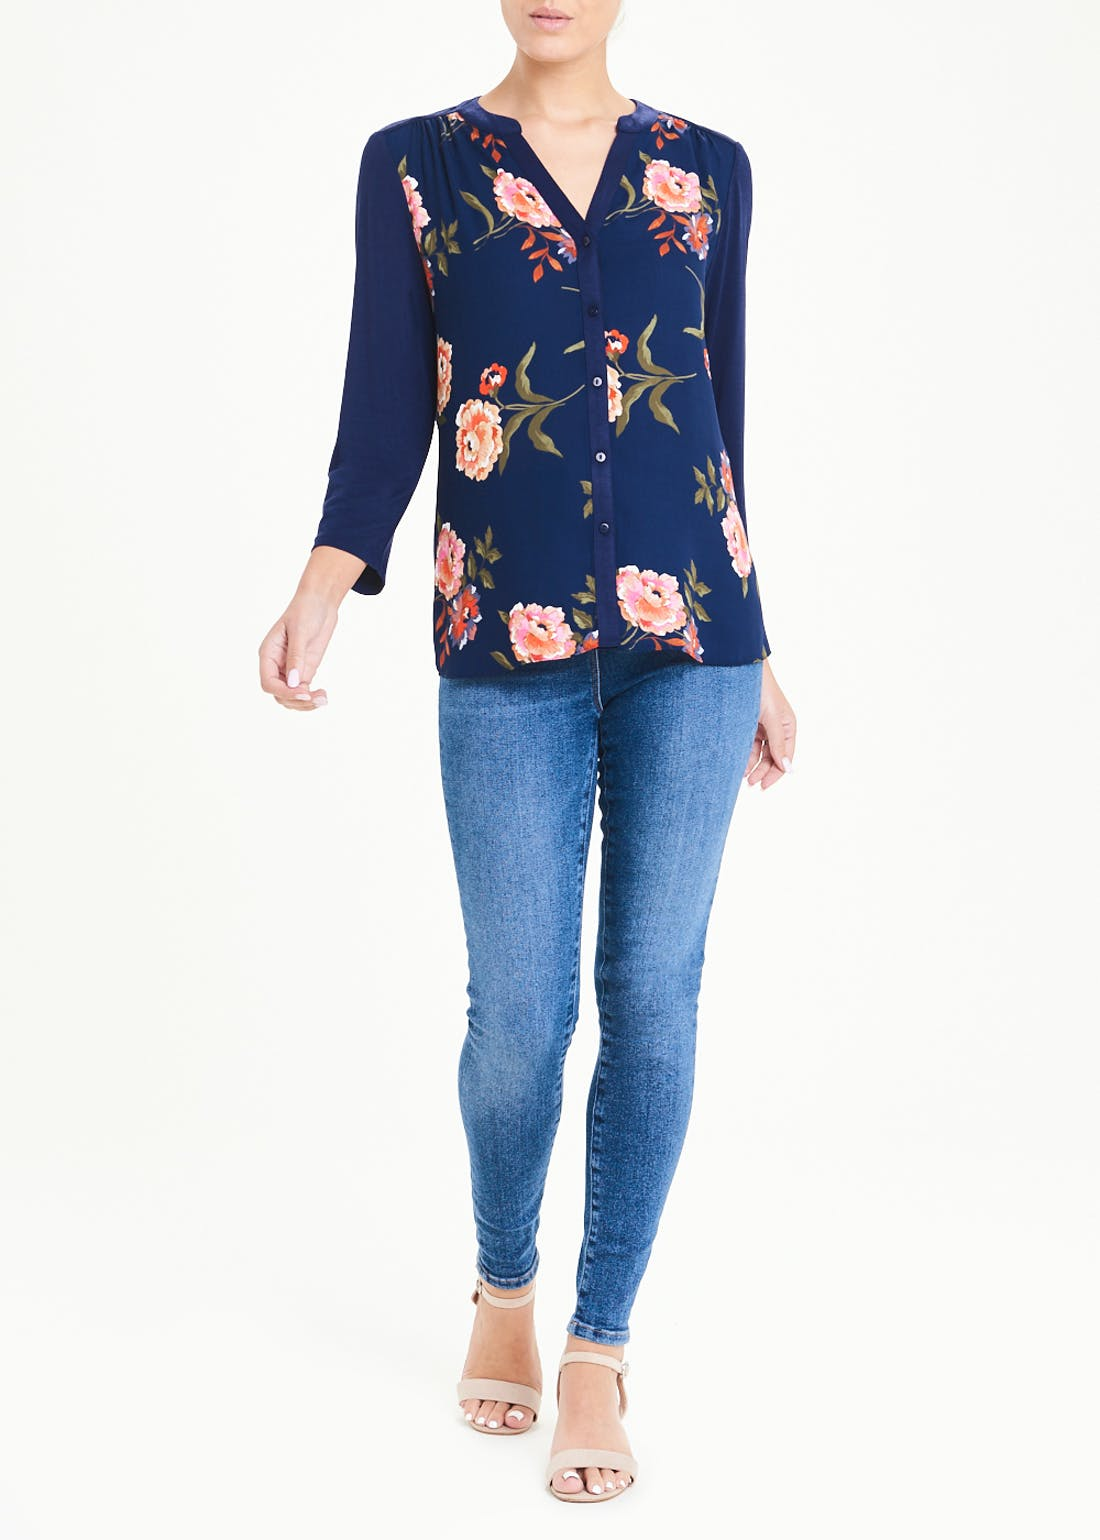 Papaya Classic Navy Floral Jersey Back Top